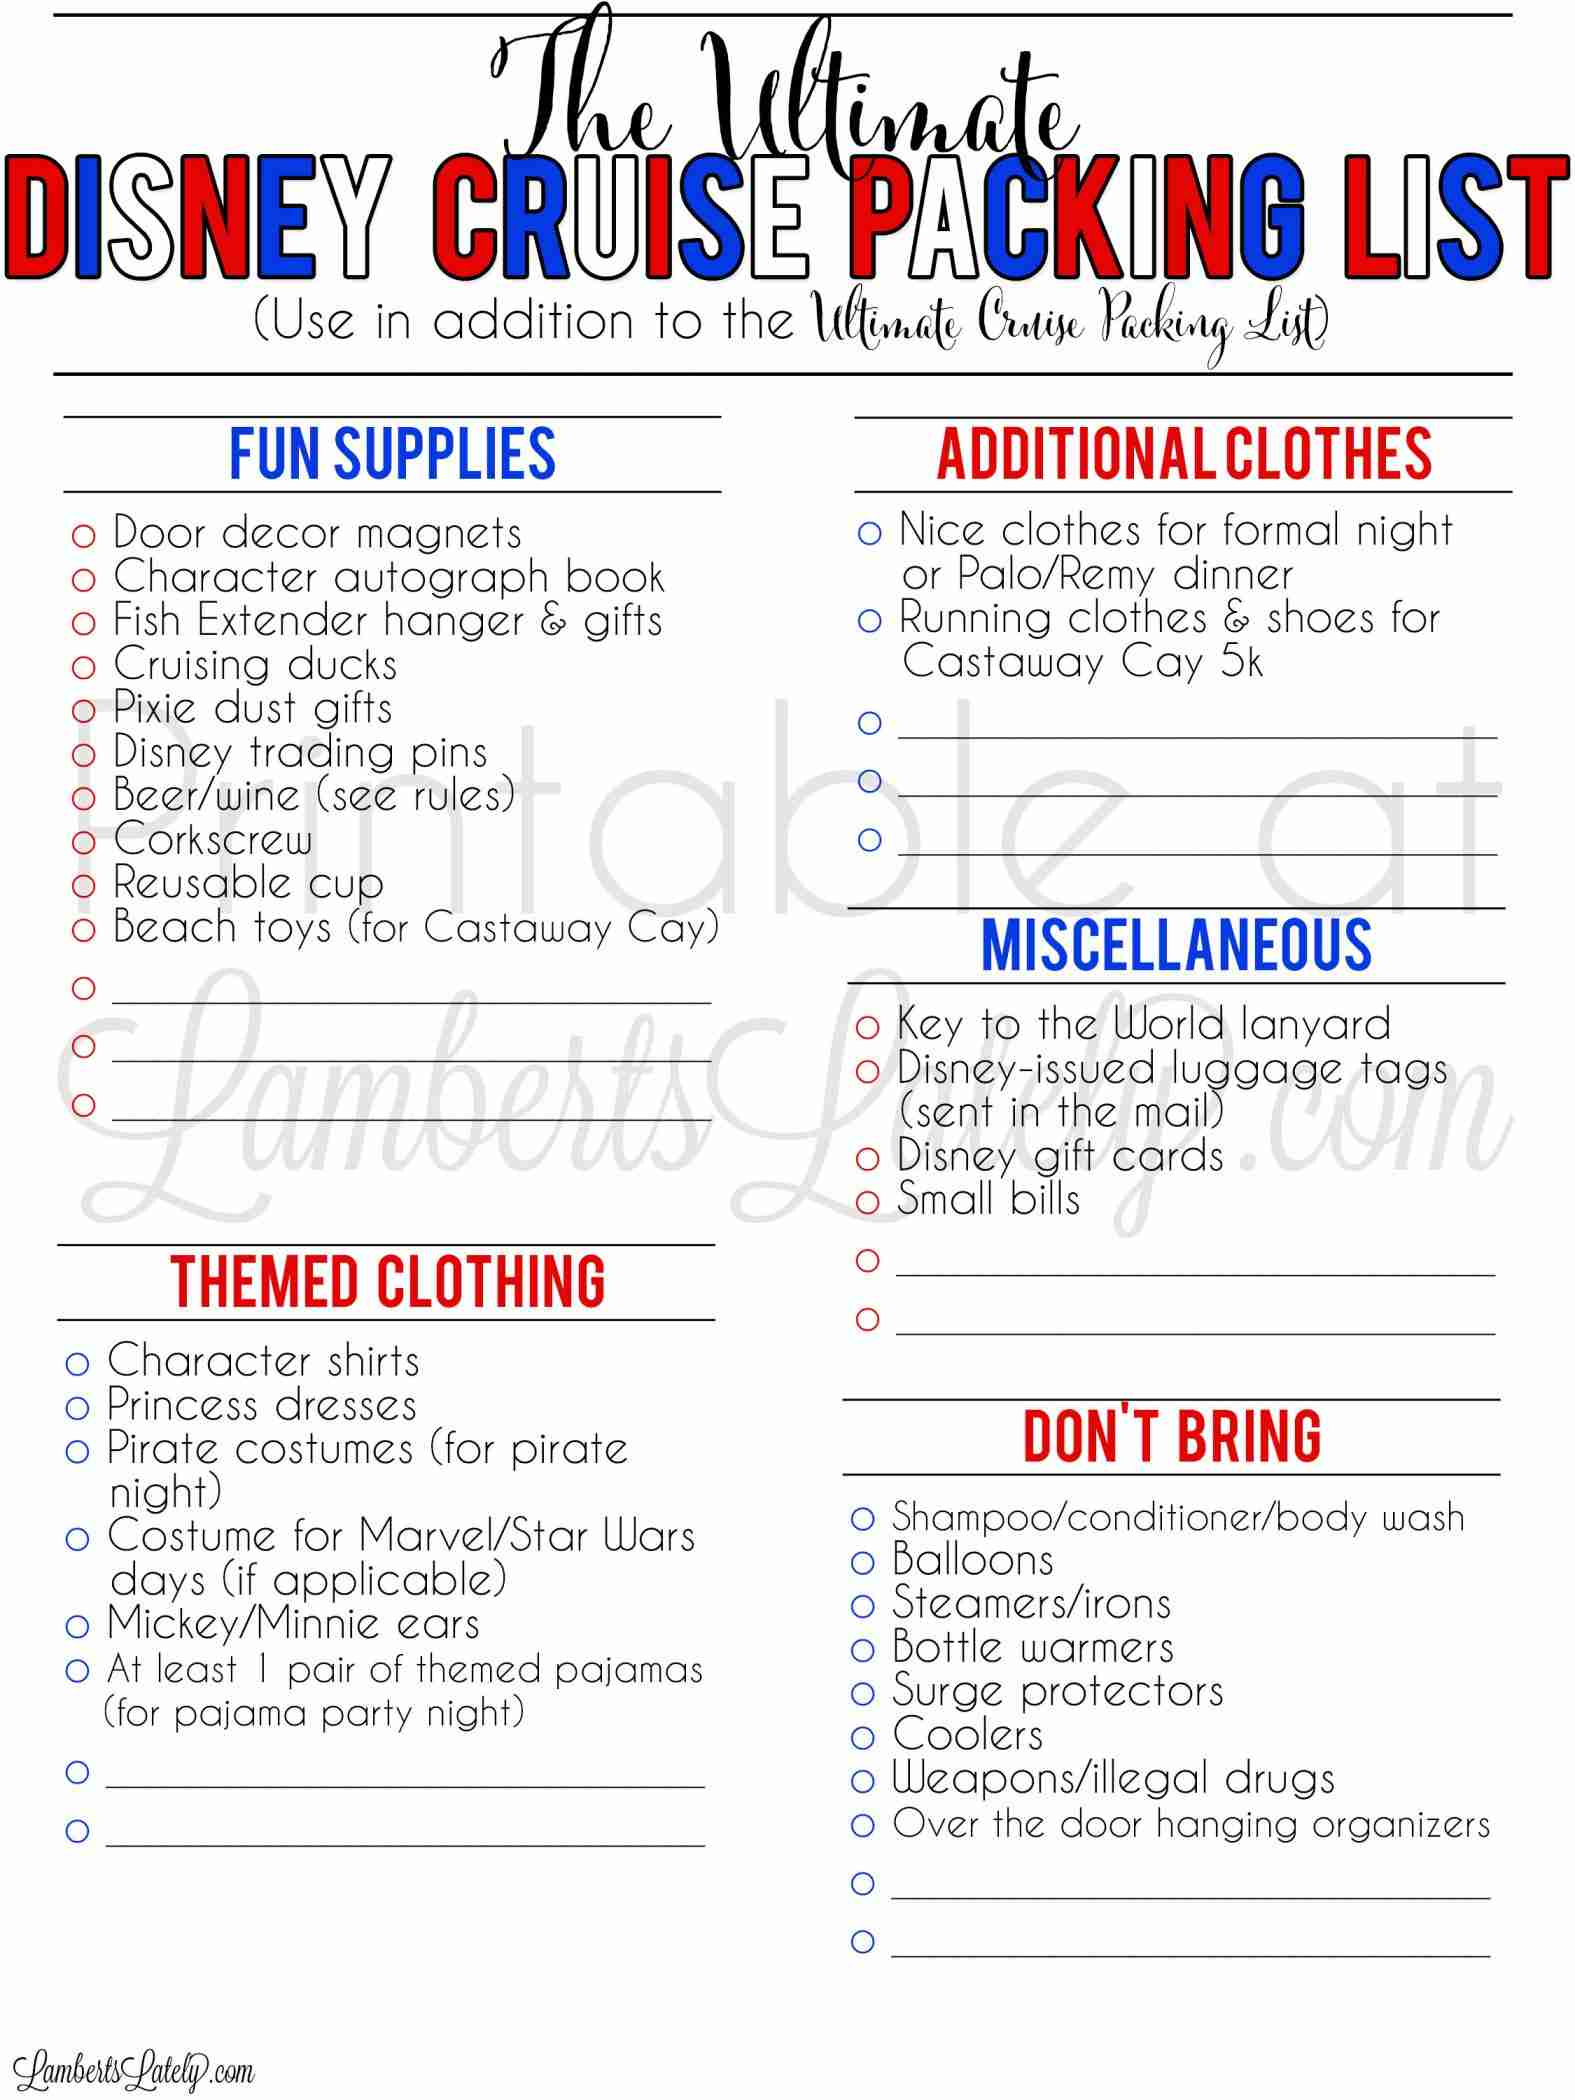 Grab a free printable Disney cruise packing list and ideas for what to bring (and not to bring) on your Caribbean vacation. Includes tips for families with kids, things to bring to Castaway Cay, and how to pack for events on a 7 day cruise.